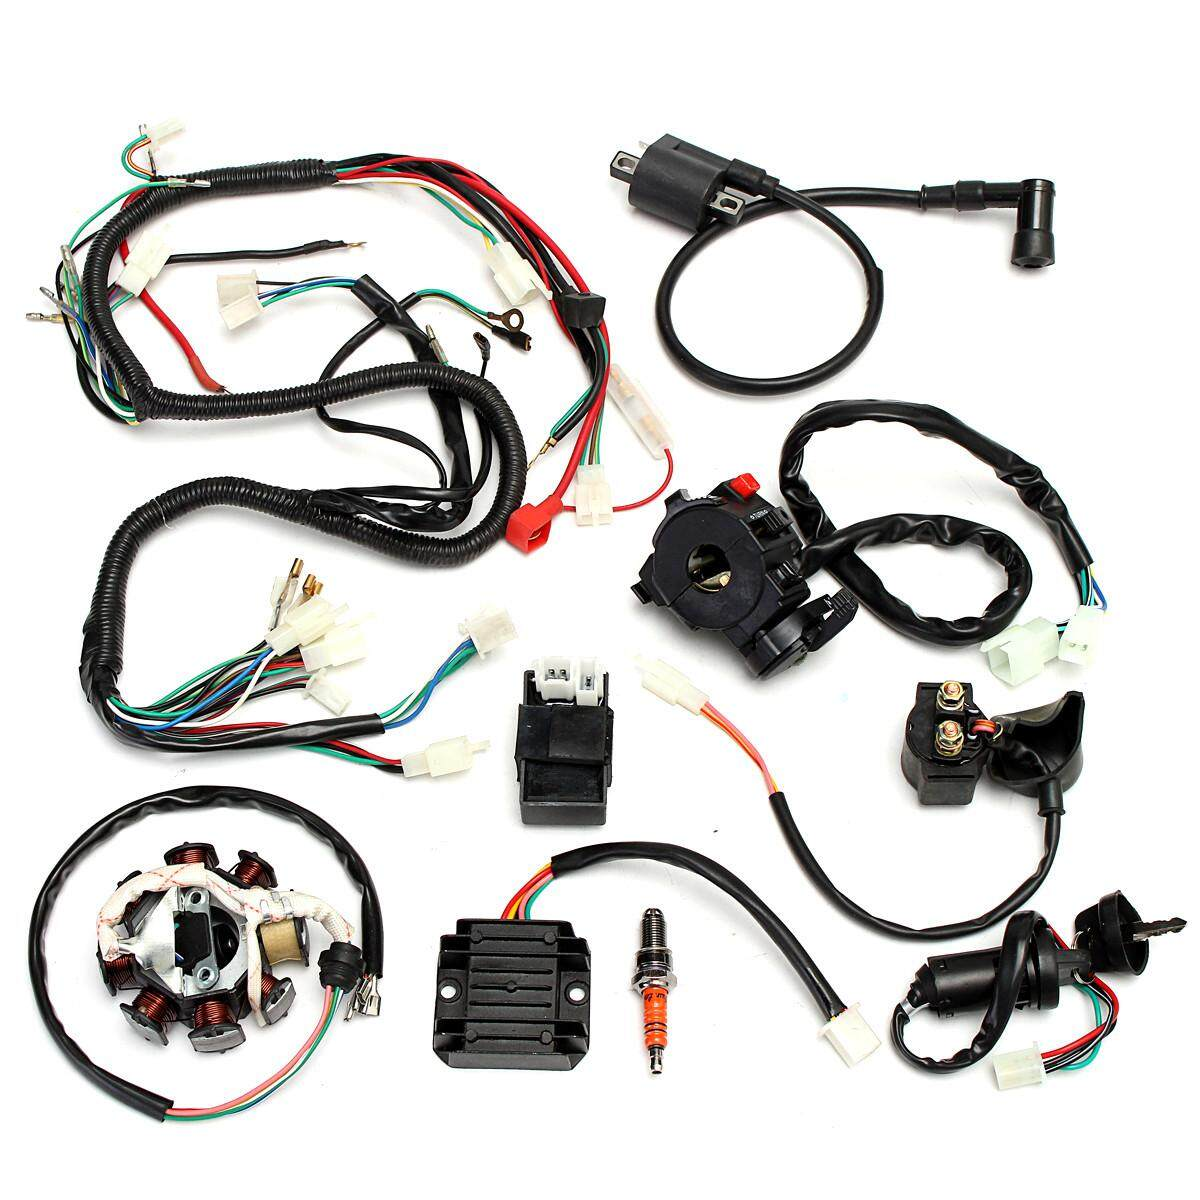 Automotive Wiring For Sale Harness Online Brands 96 Honda Accord Vtec Complete Electrics Chinese Dirt Bike Atv Quad 150 250 300cc Intl